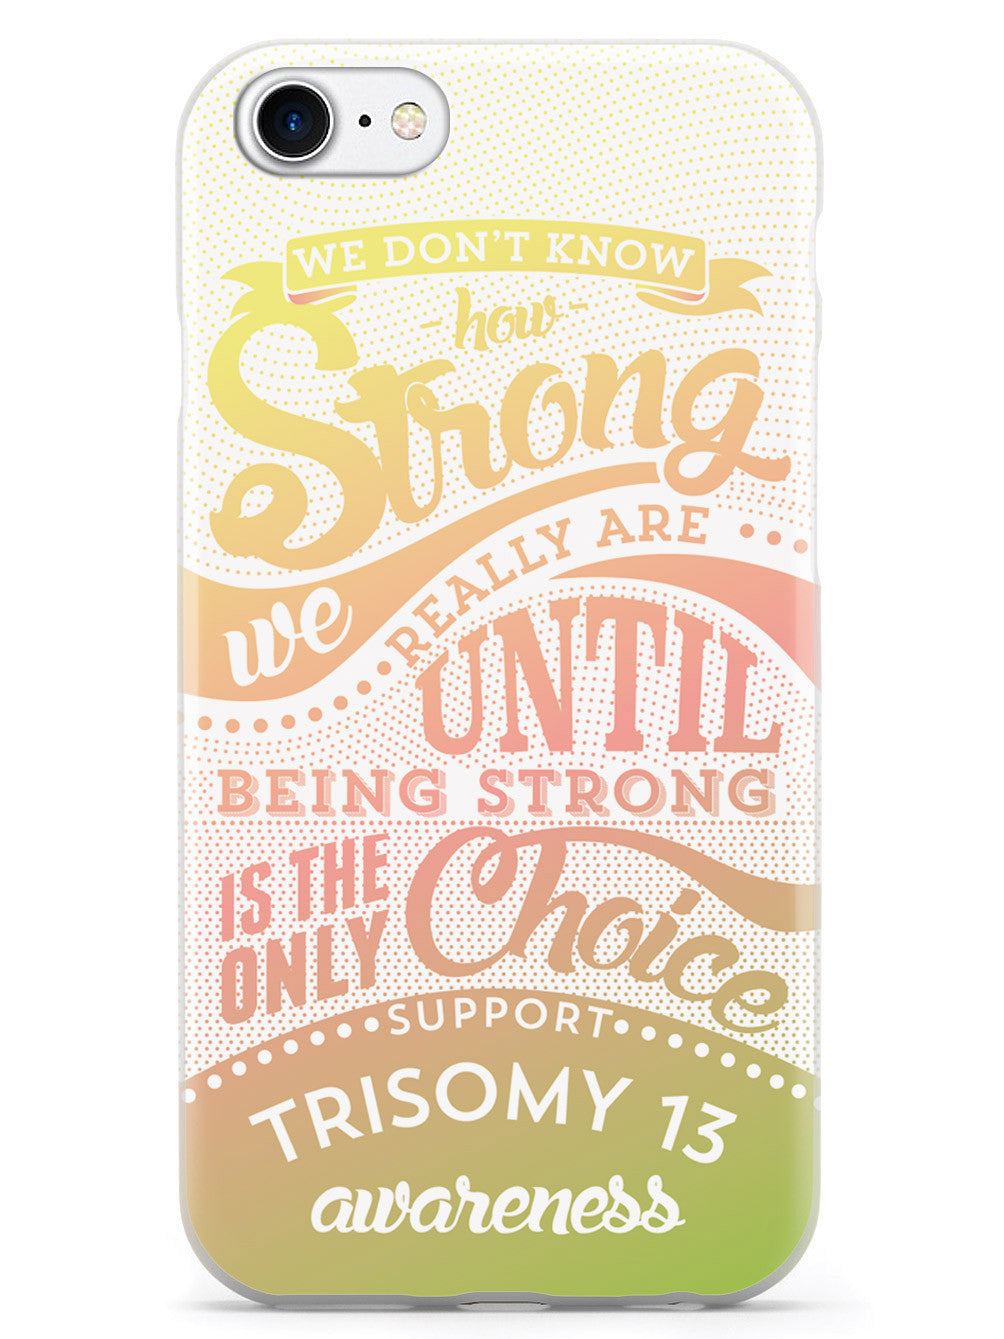 Trisomy 13 Awareness - How Strong Case